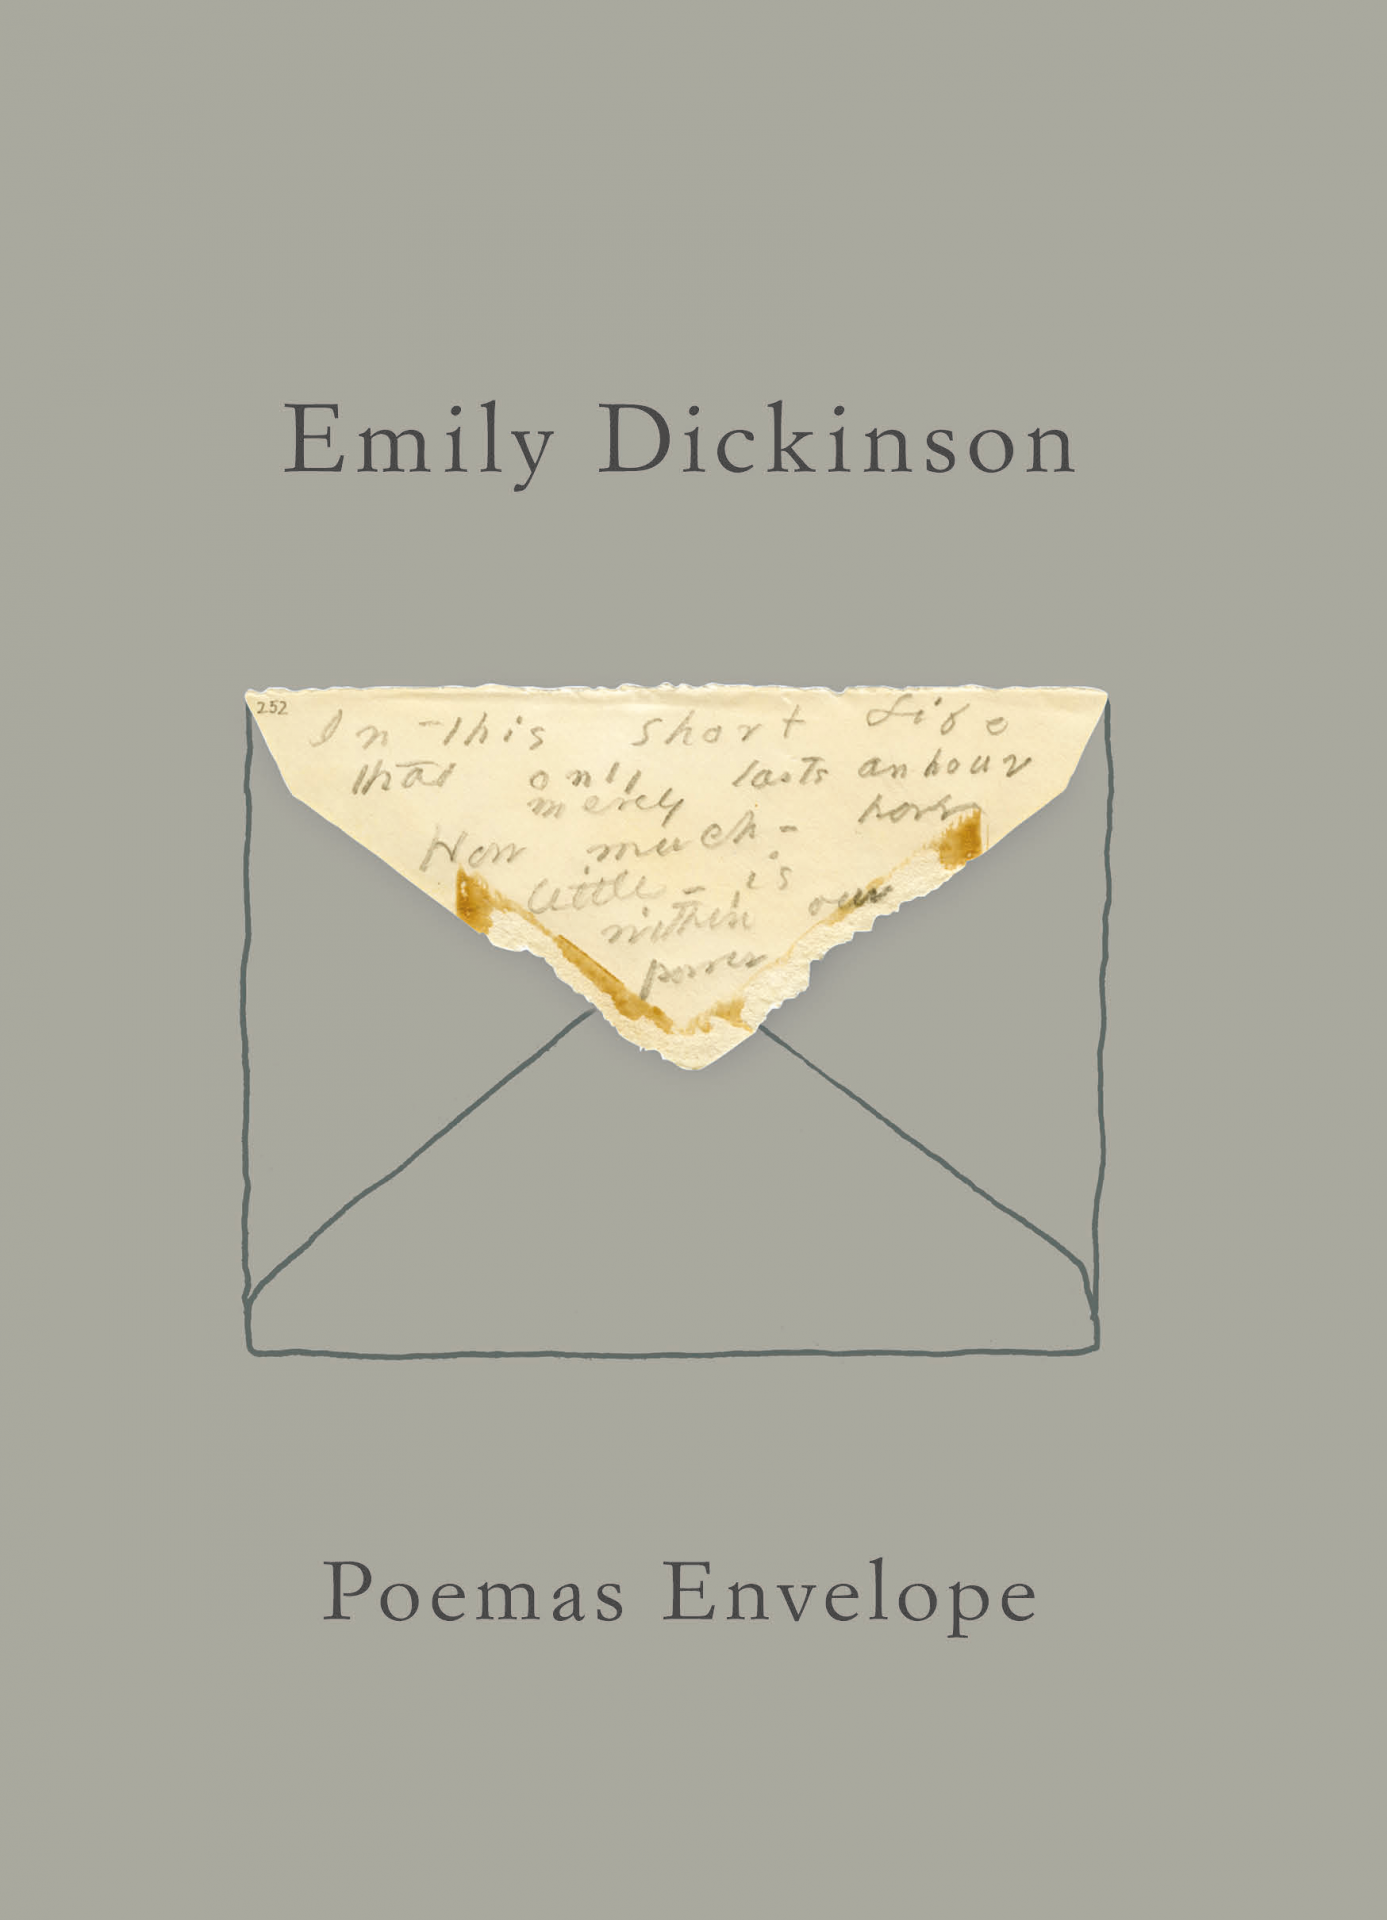 POEMAS ENVELOPE DE EMILY DICKINSON